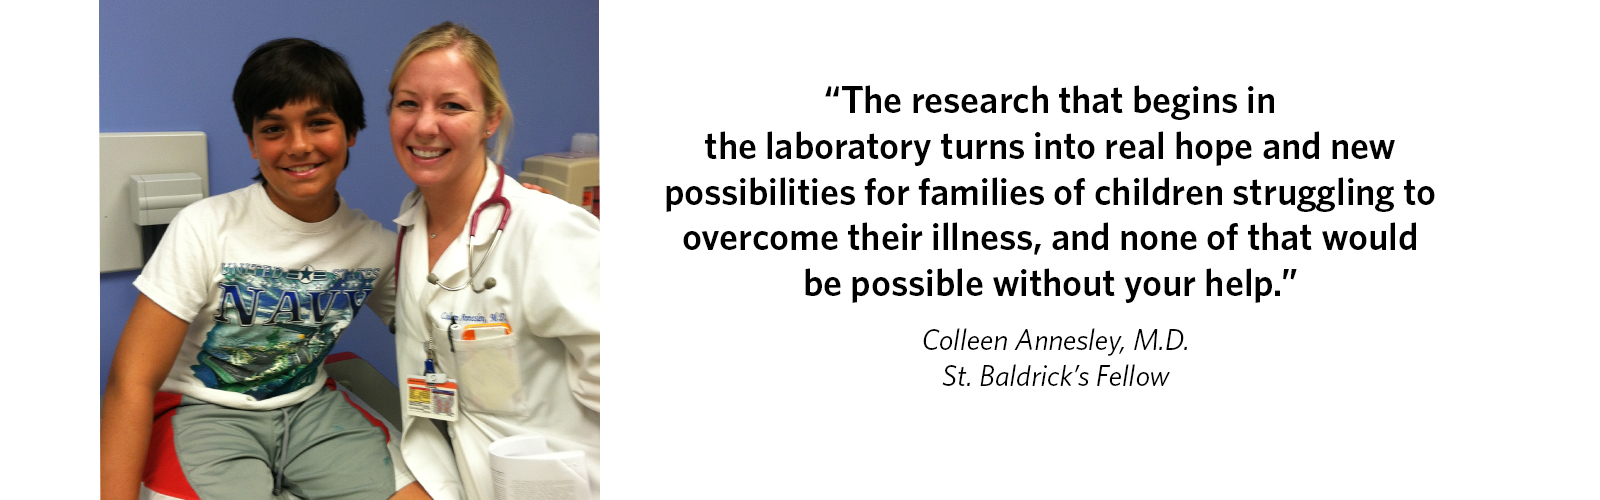 'The research that begins in the laboratory turns into real hope and new possibilities for families of children struggling to overcome their illness, and none of that would be possible without your help.' Colleen Annesley, M.D., St. Baldrick's Fellow